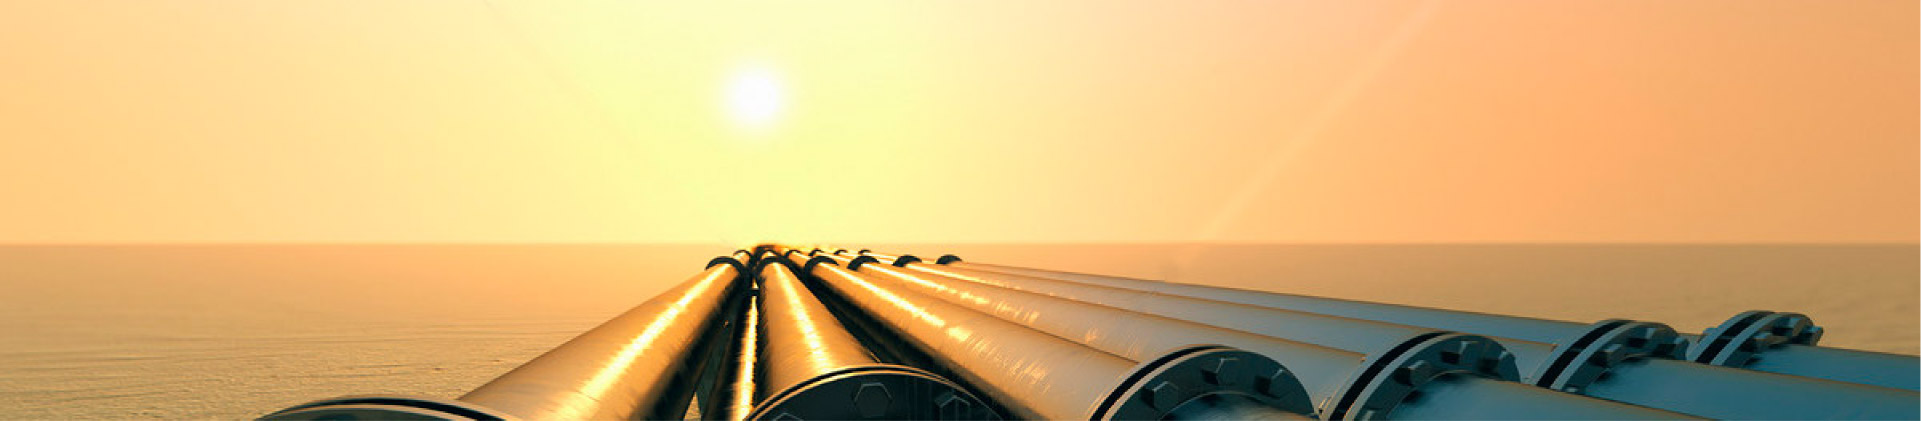 China Imports More Natural Gas